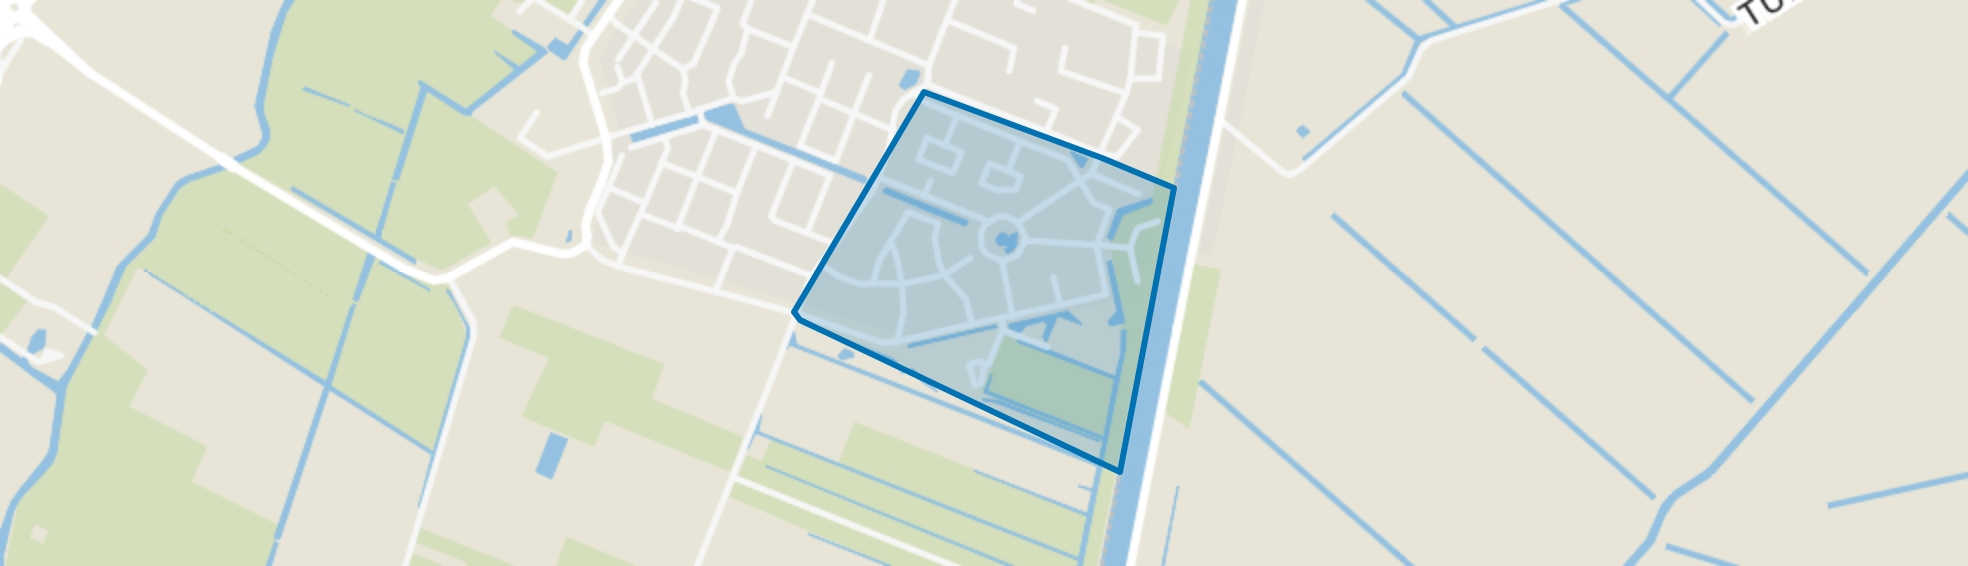 Lisse Rond, Lisse map